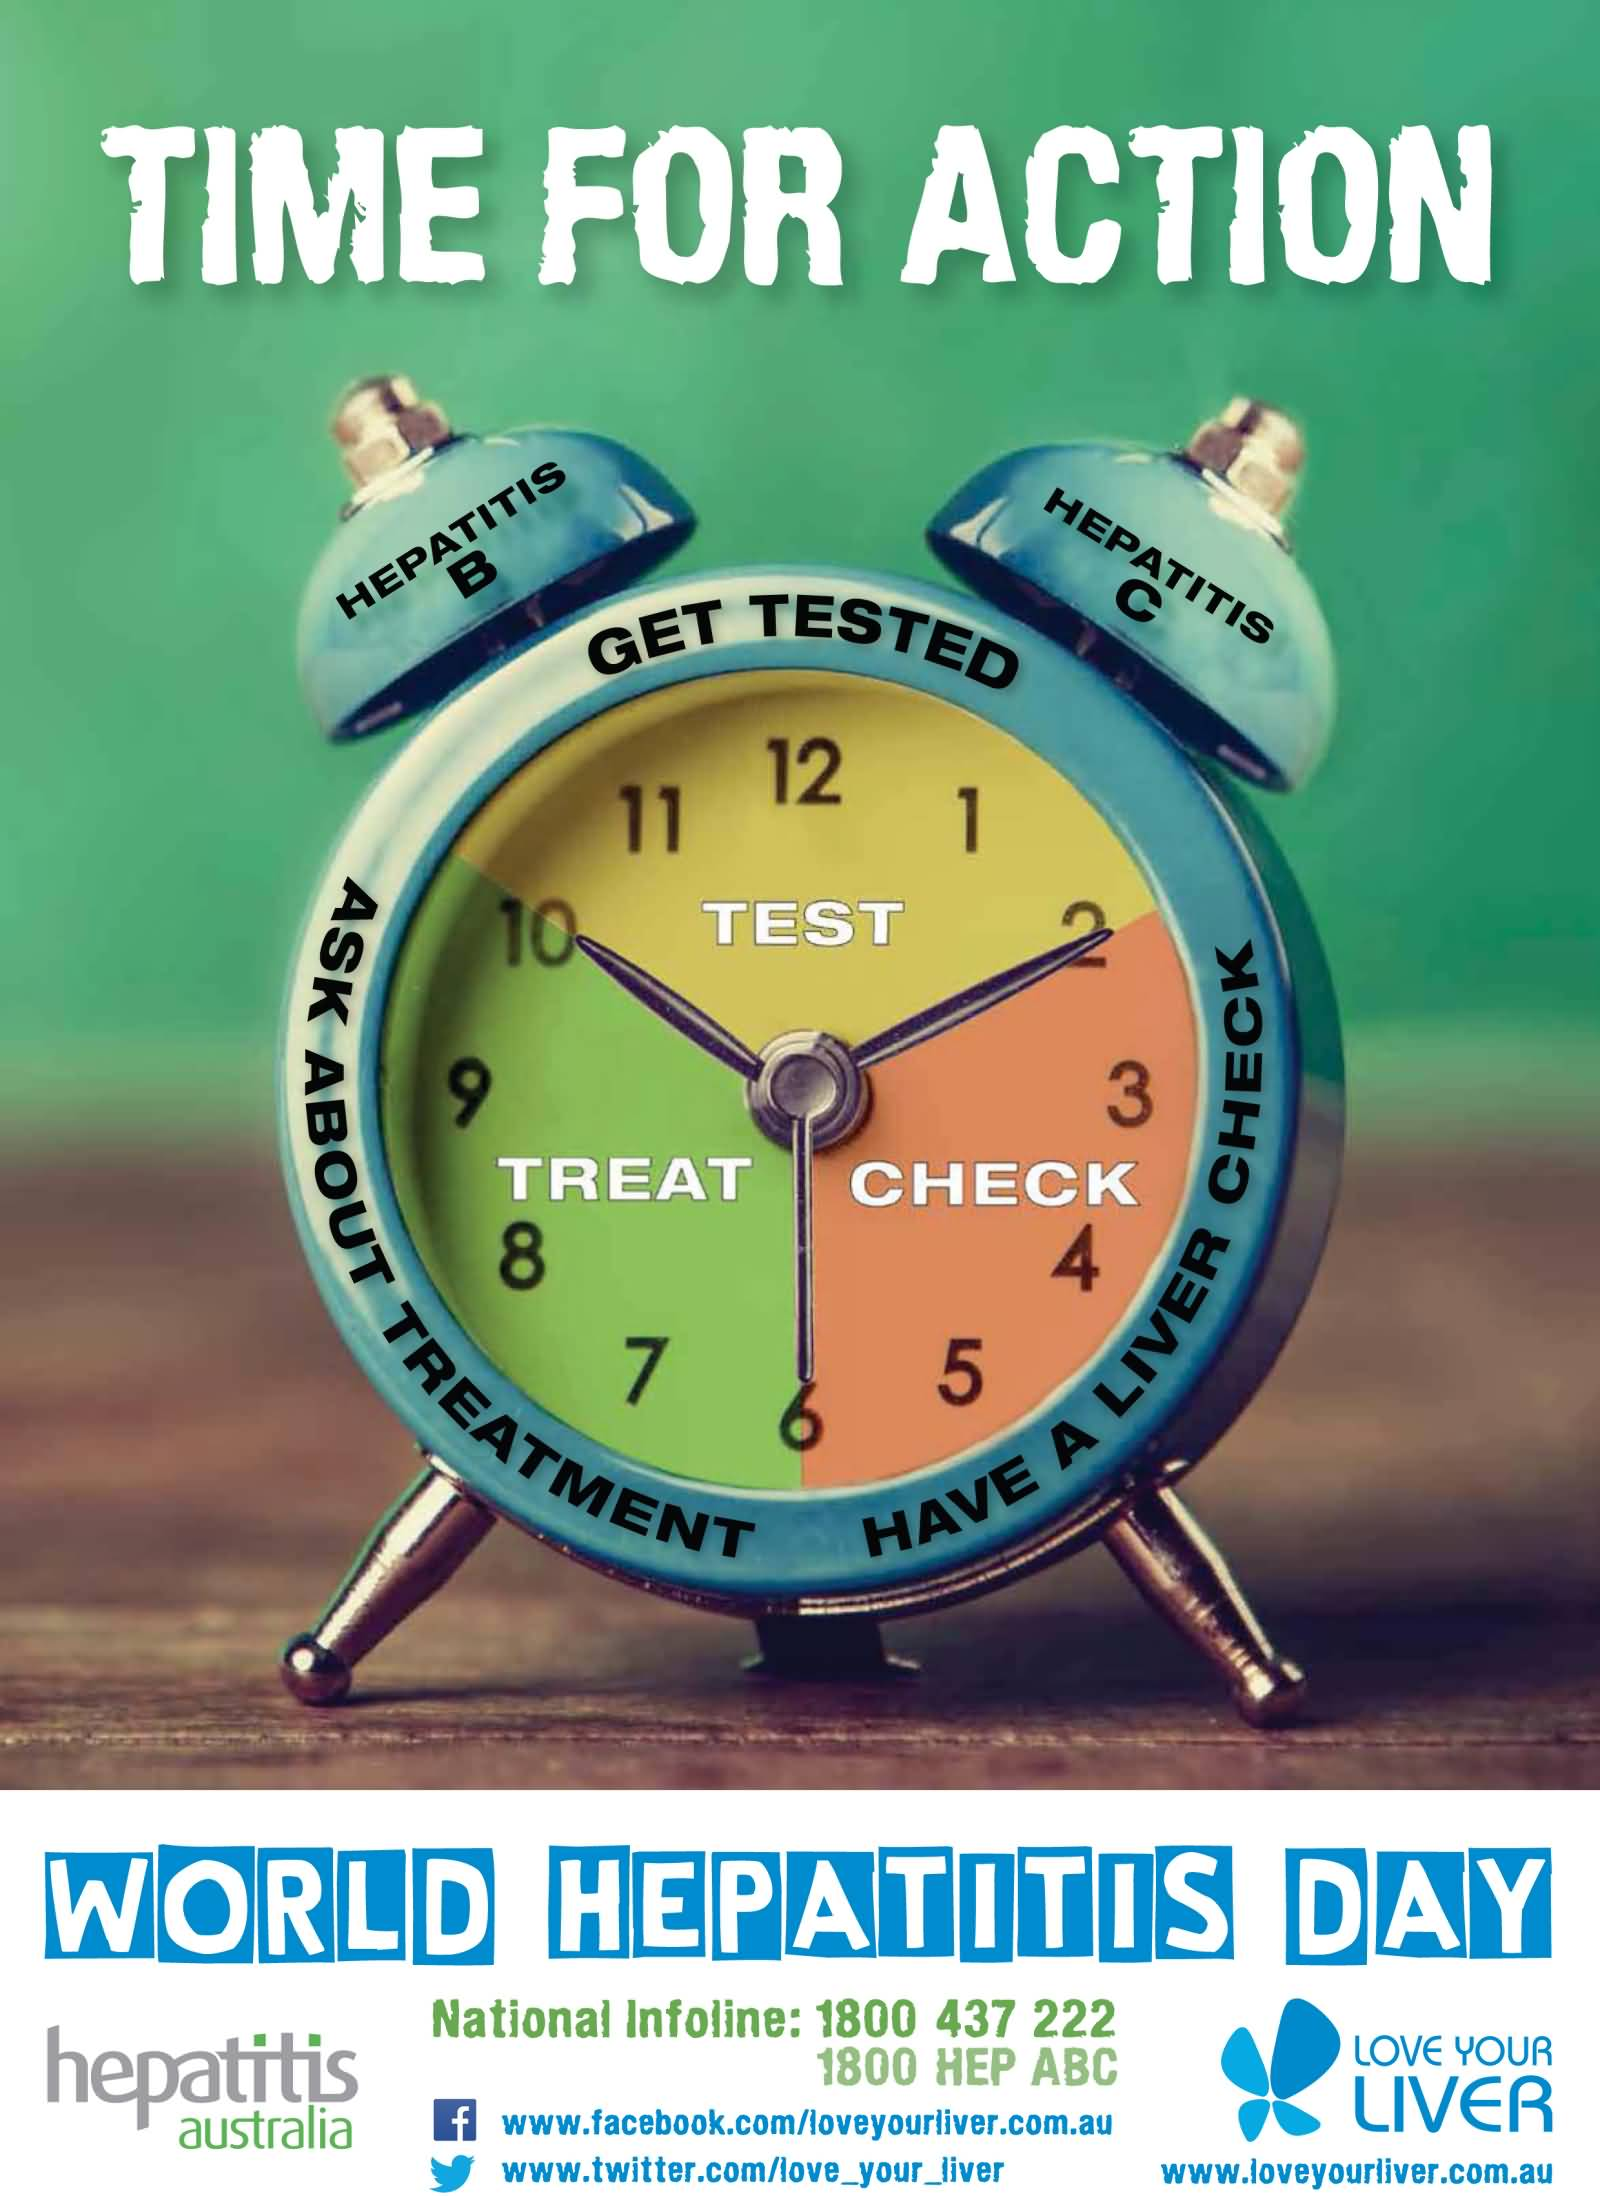 Time For Action Test Teat Check - World Hepatitis Day